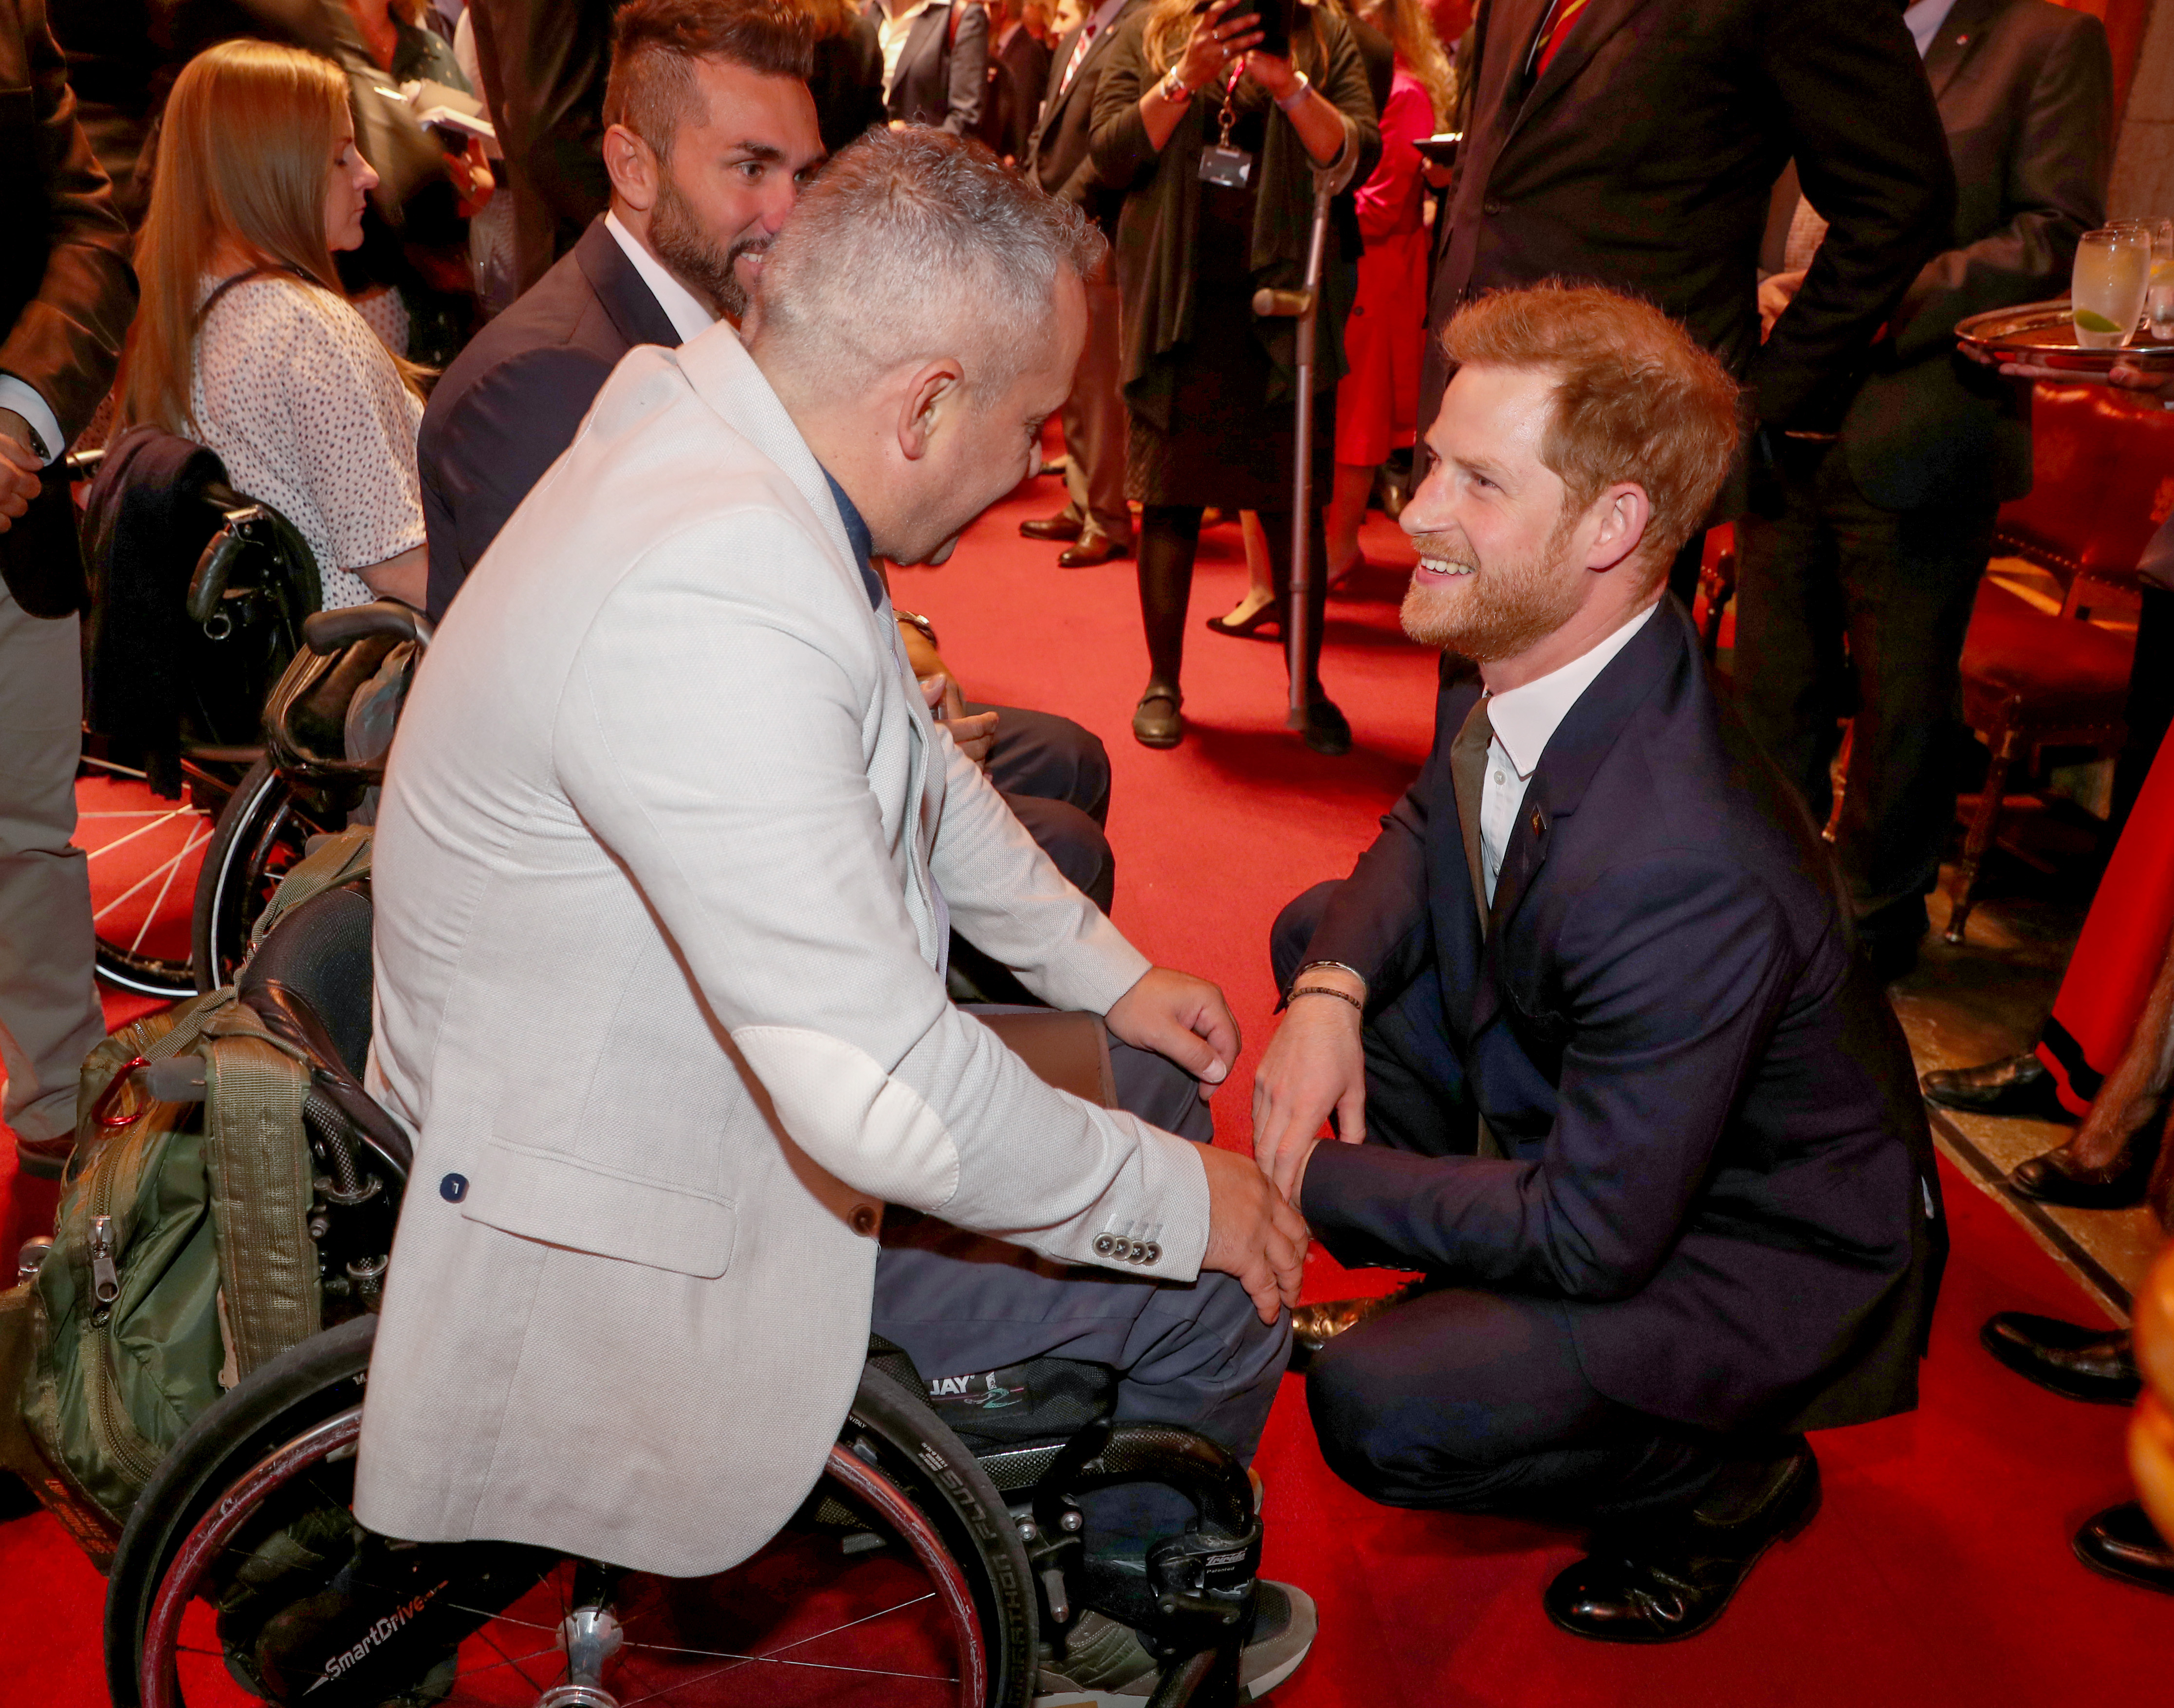 The Duke of Sussex celebrates 5 years of The Invictus Games